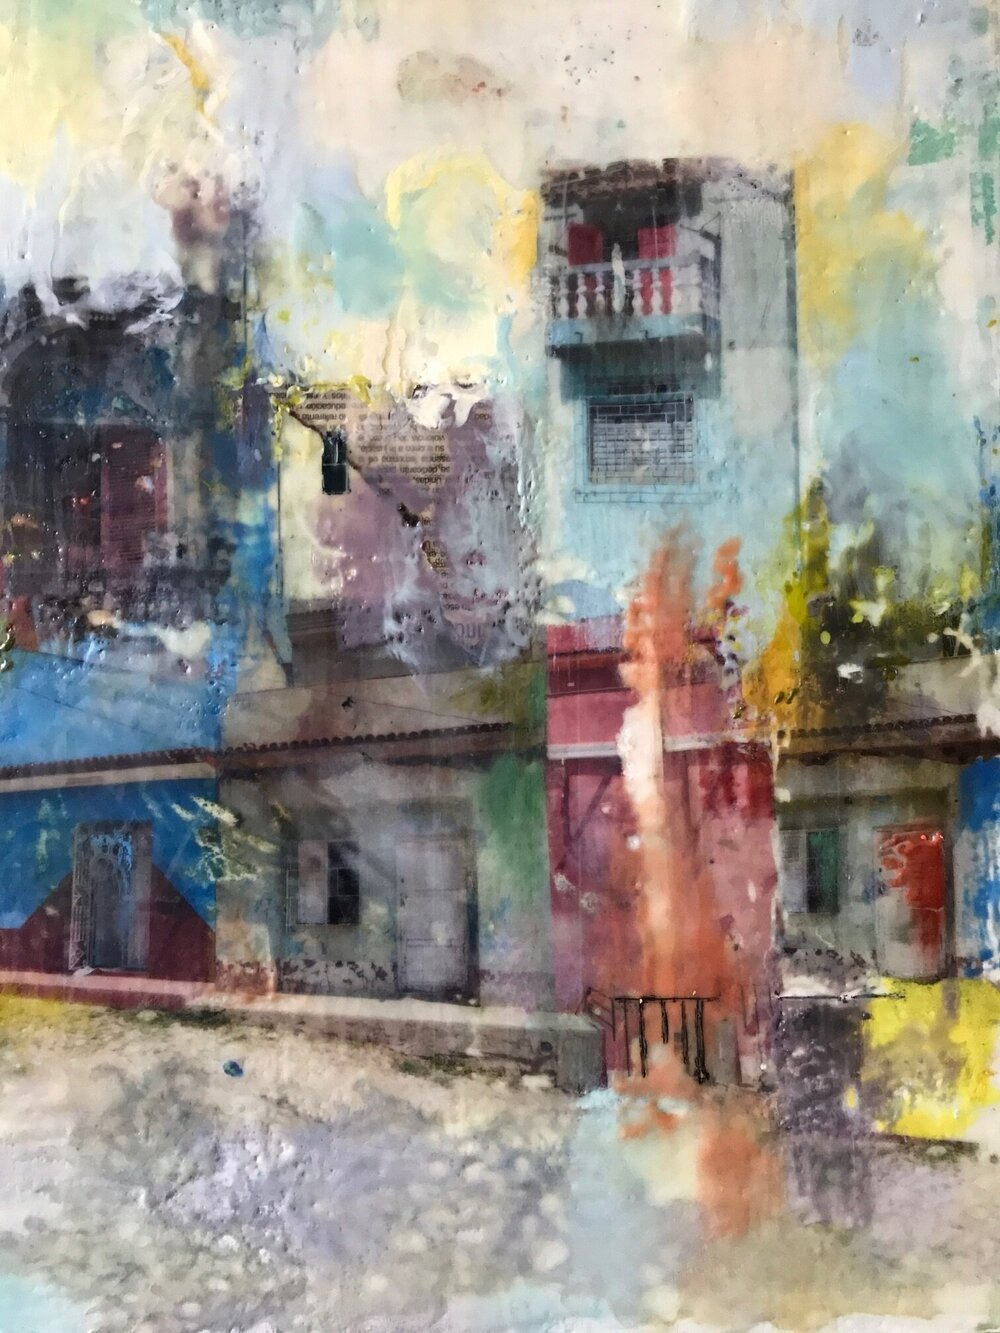 Cienfuegos, encaustic collage, 12x16""